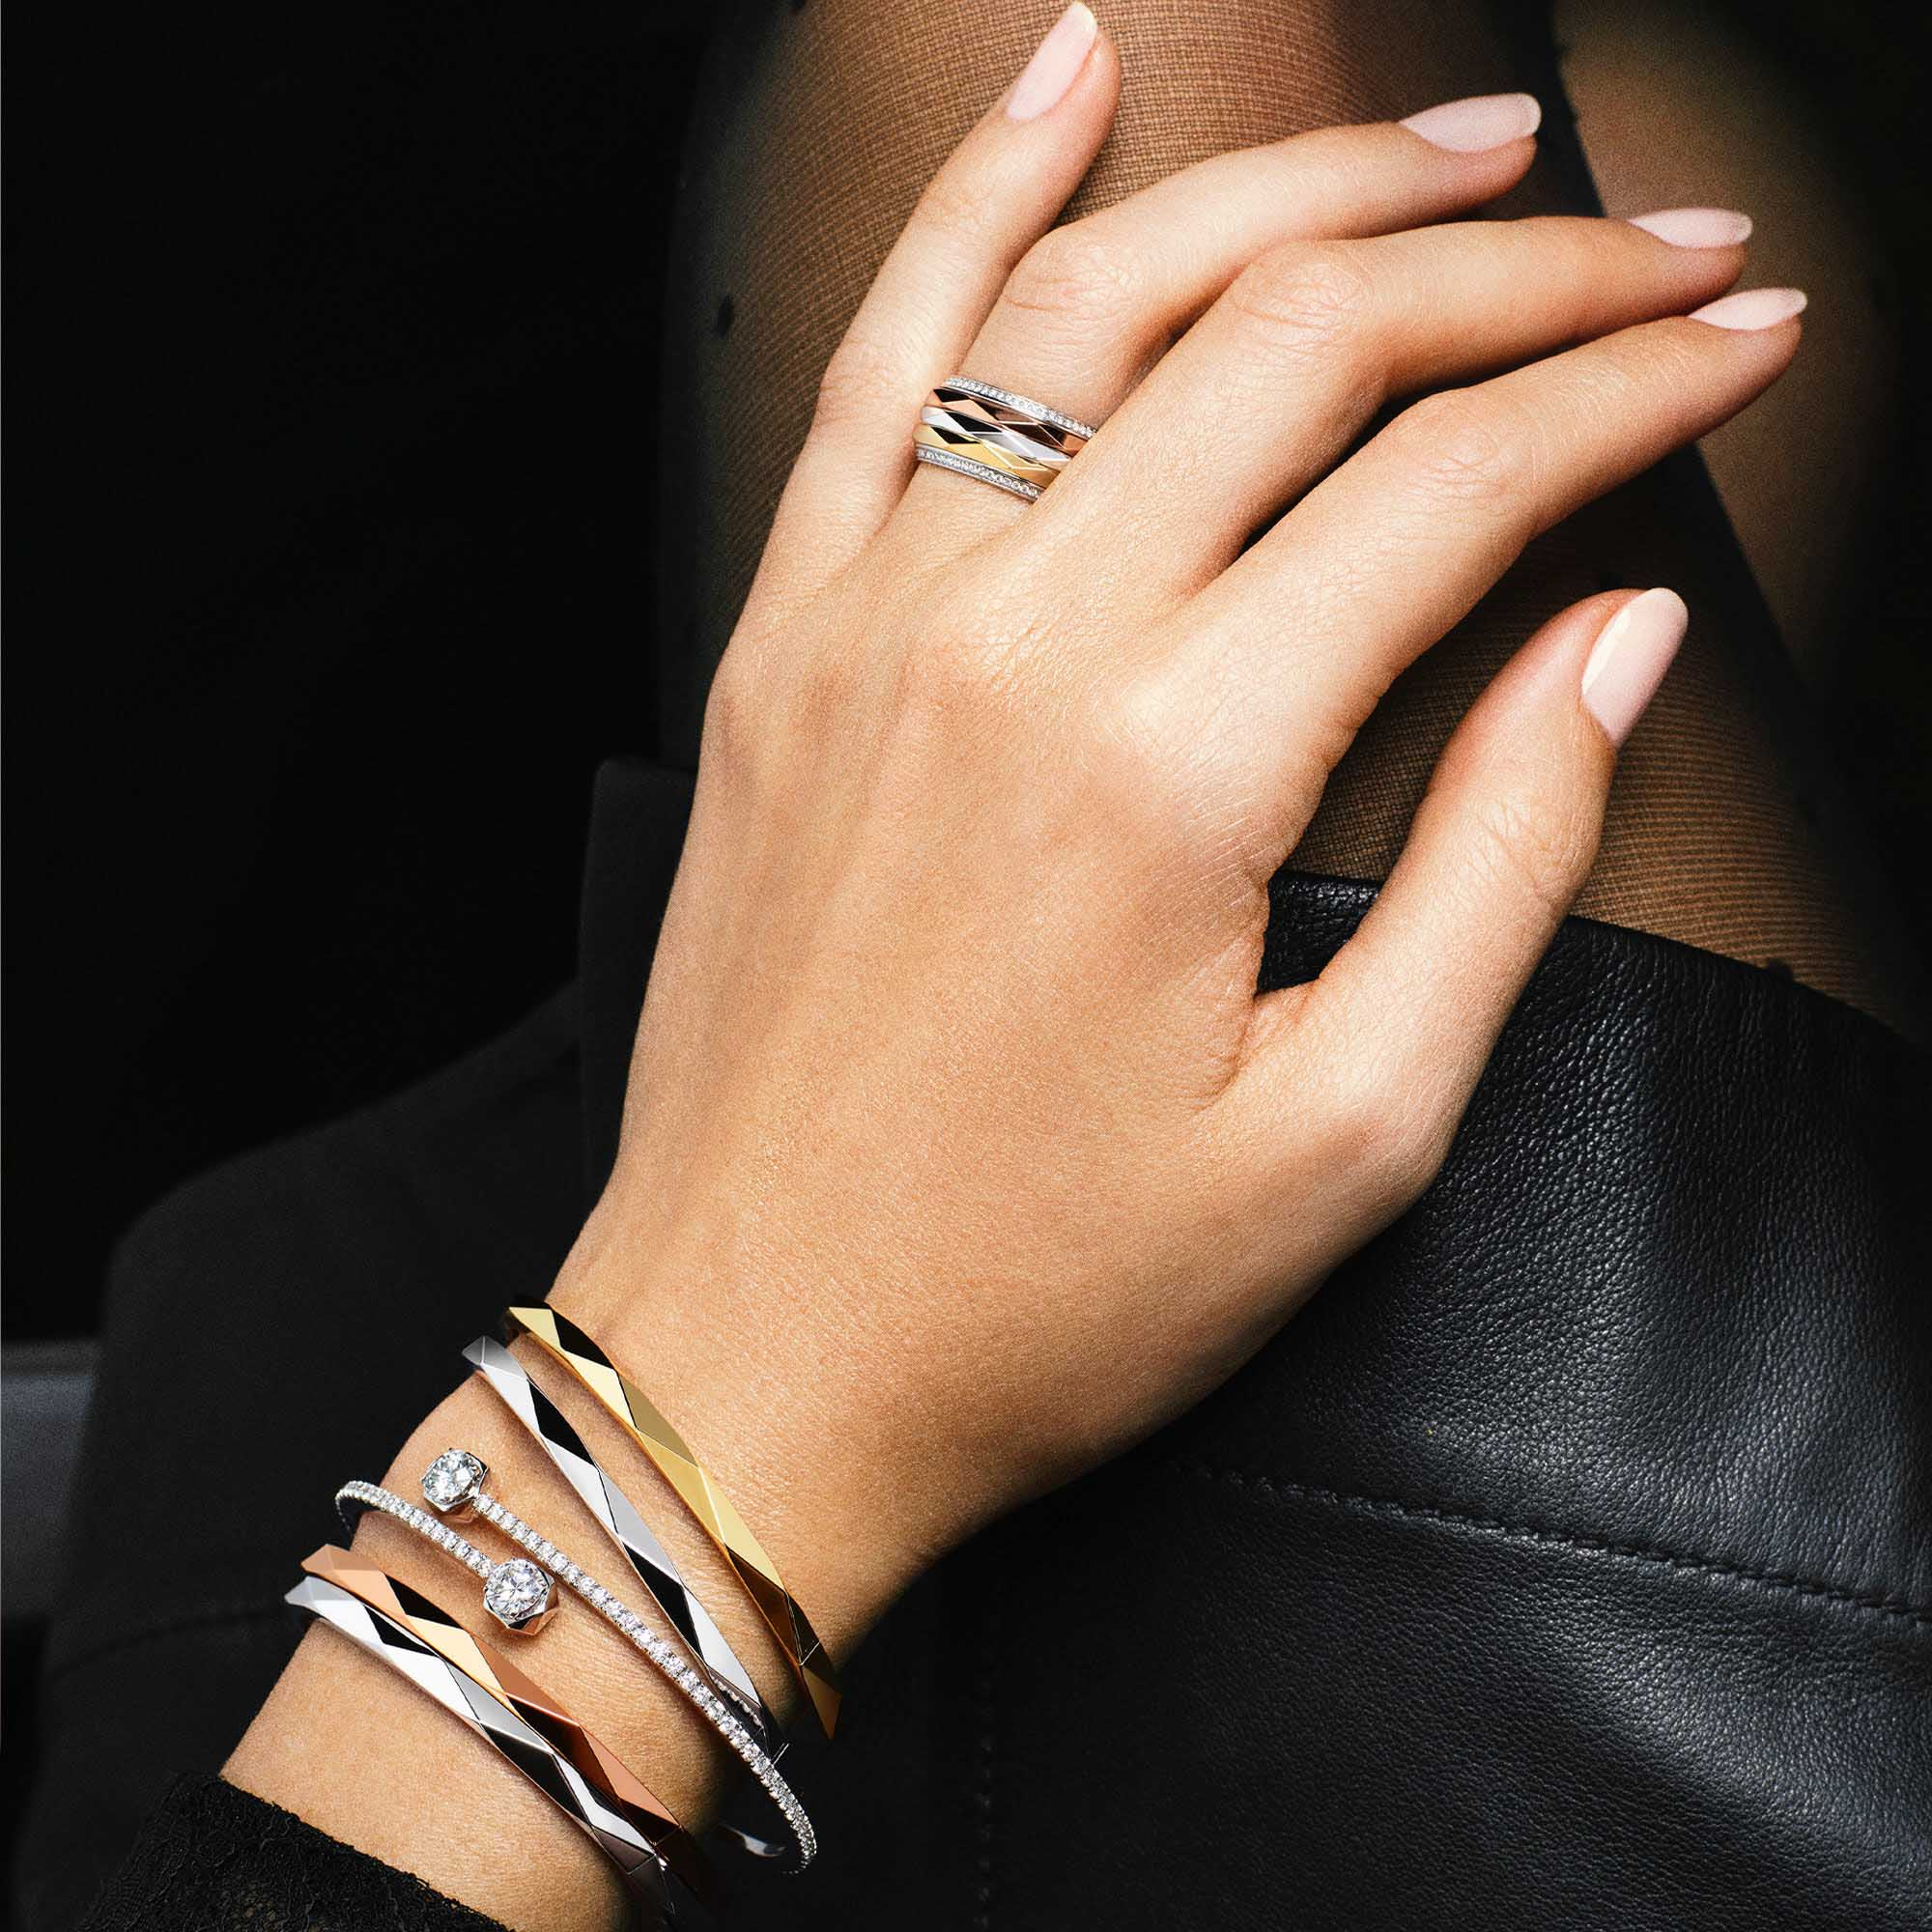 Close up of a model's hand wearing Graff Laurence Graff Signature jewellery collection rings and bracelets